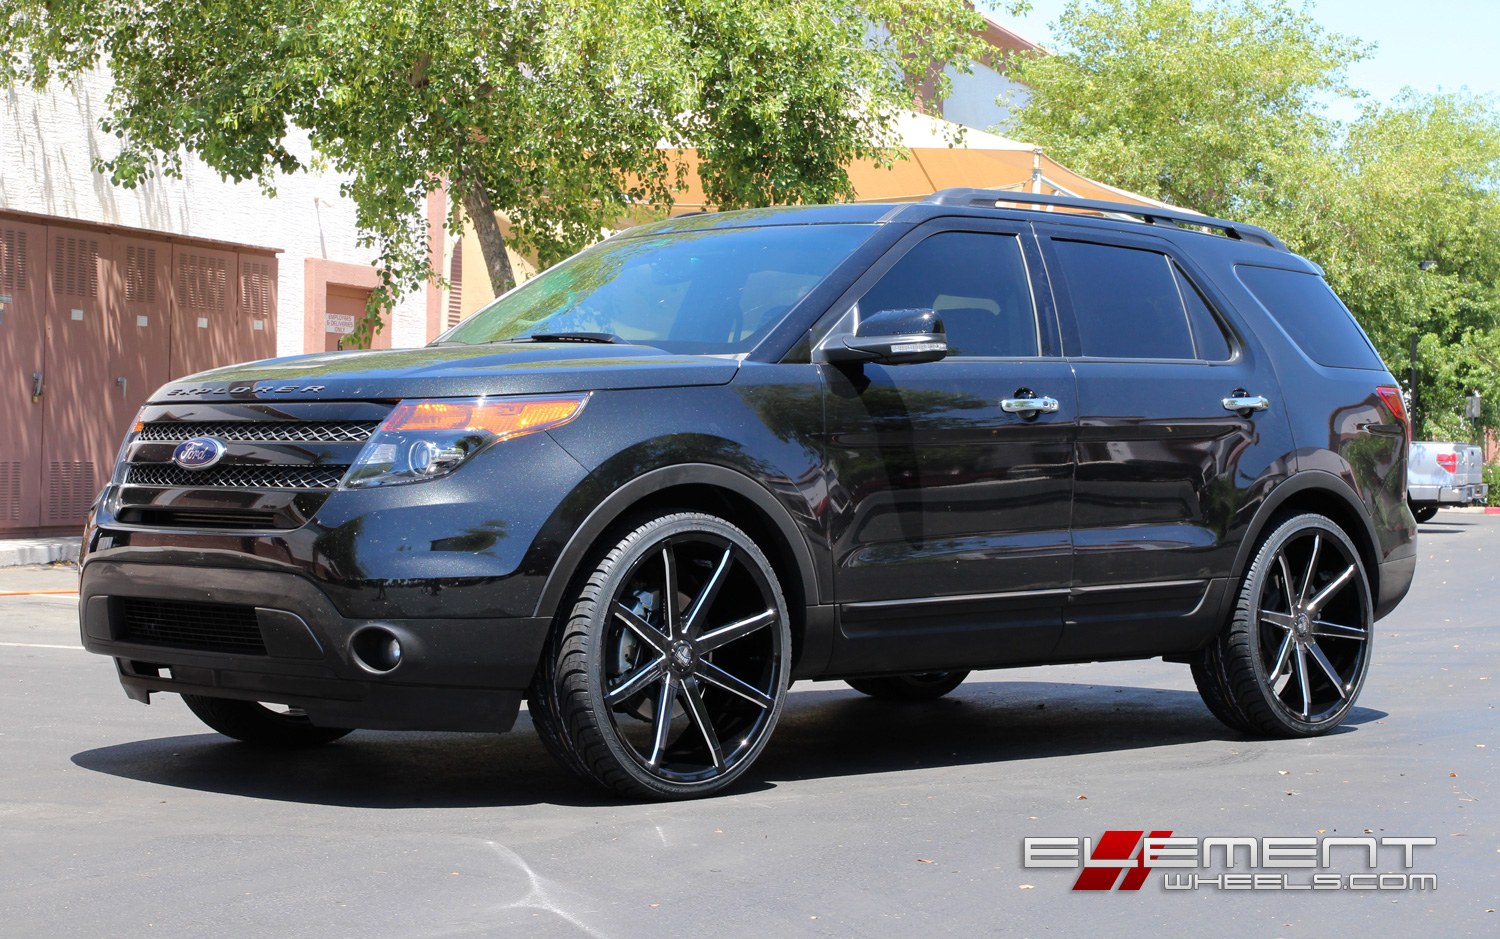 24 inch dub push gloss black milled wheels on 2014 ford explorer w specs element wheels. Black Bedroom Furniture Sets. Home Design Ideas